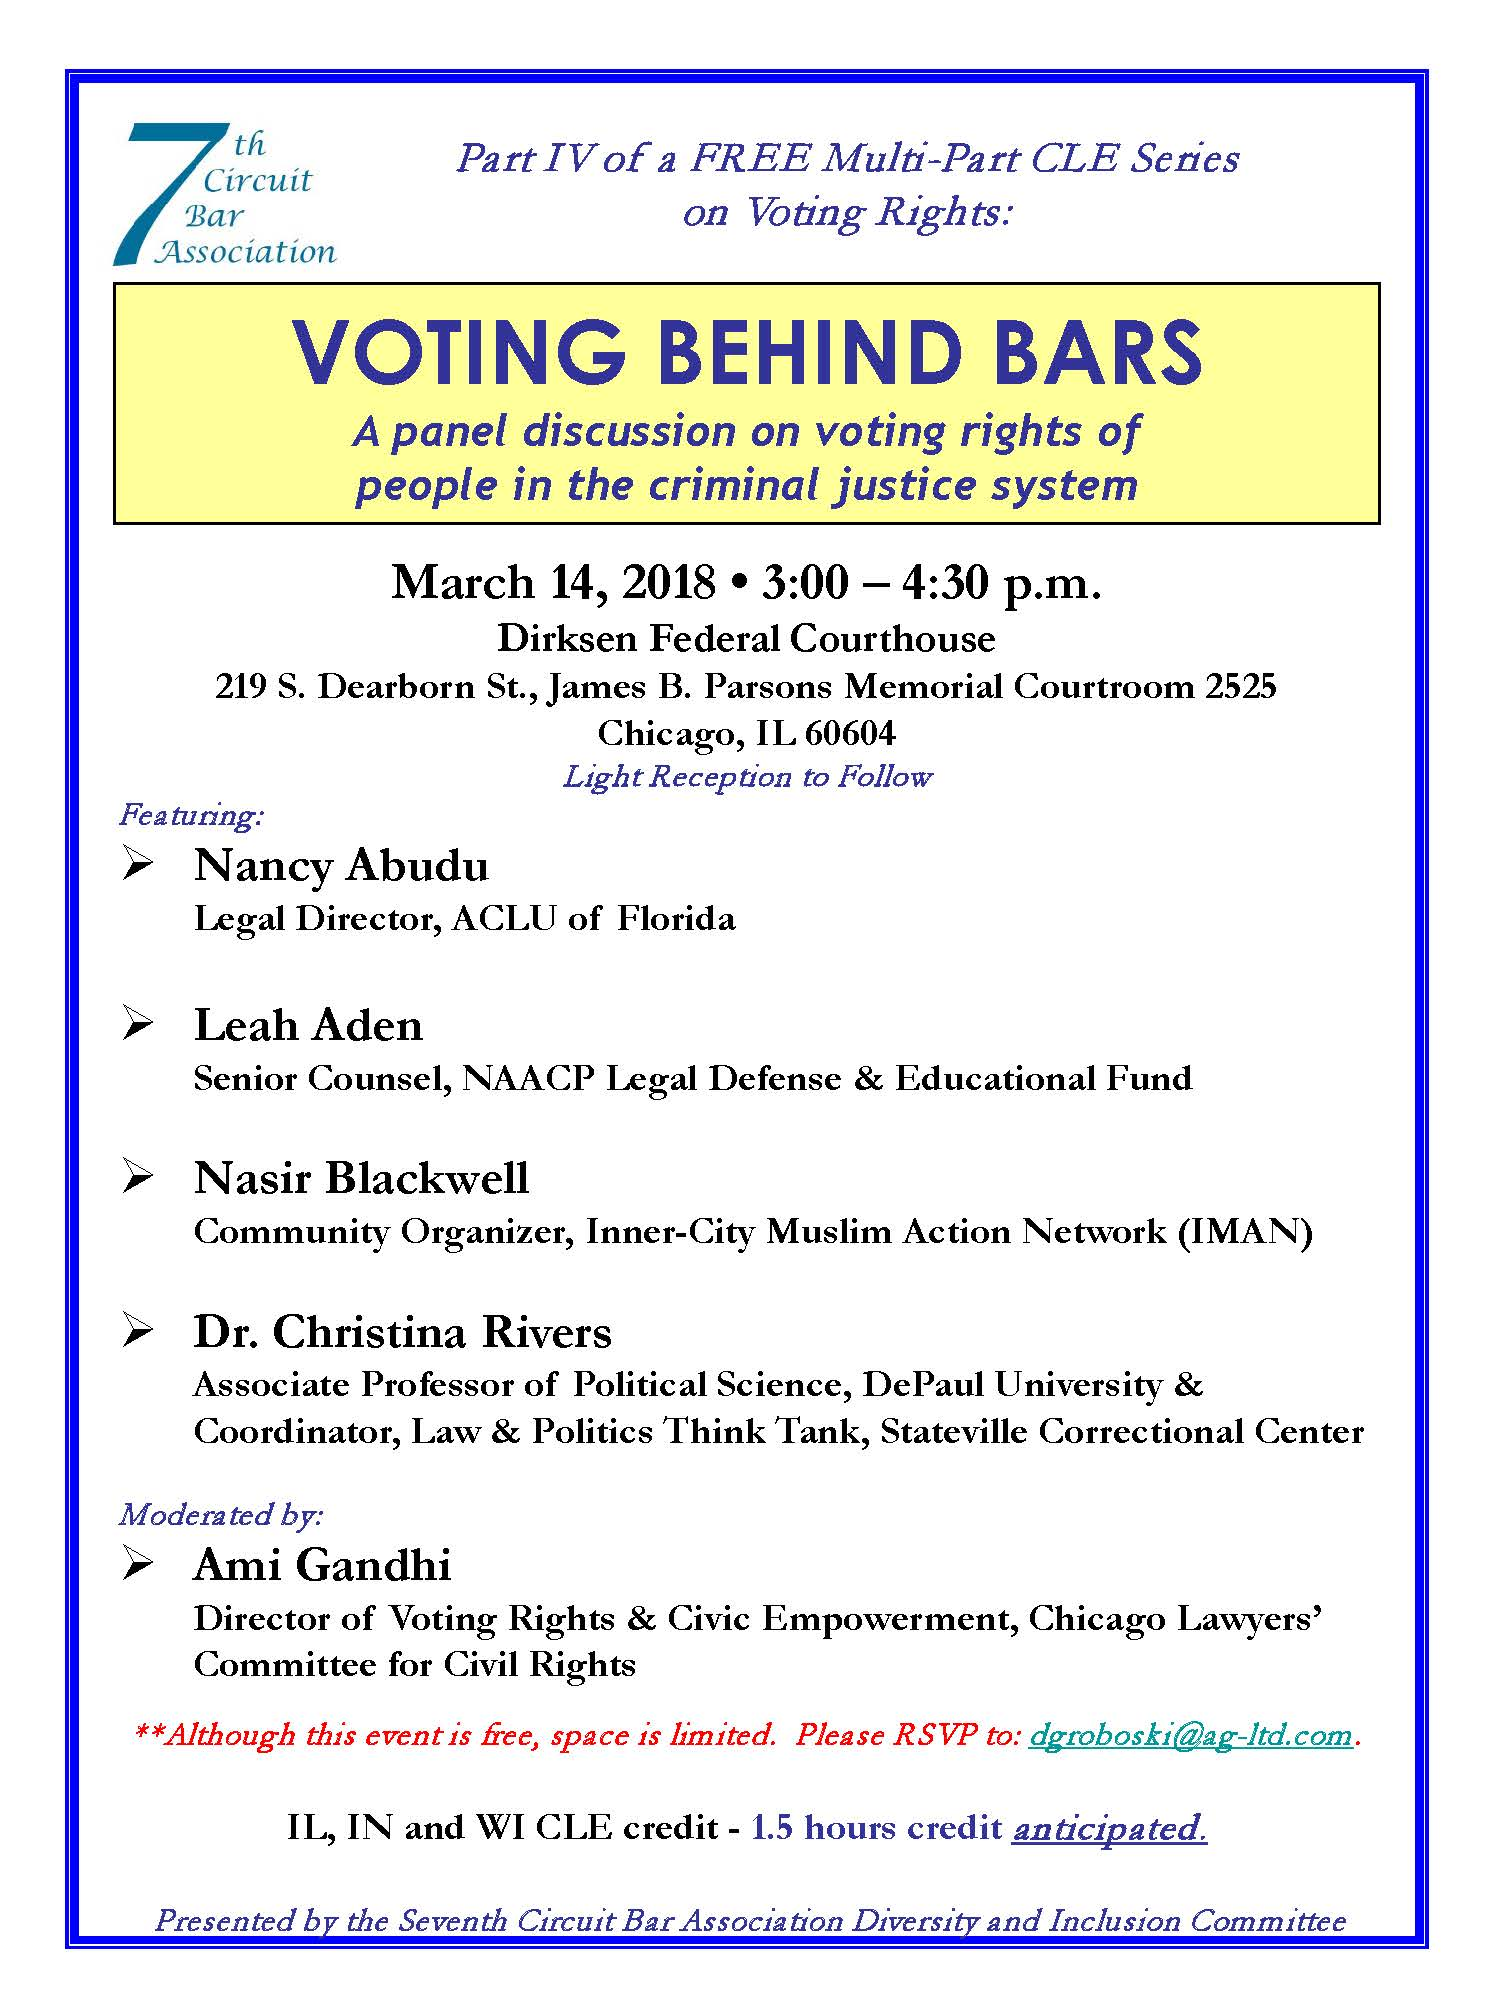 2018-03-14 Voting Rights Panel flyer - FINAL.jpg